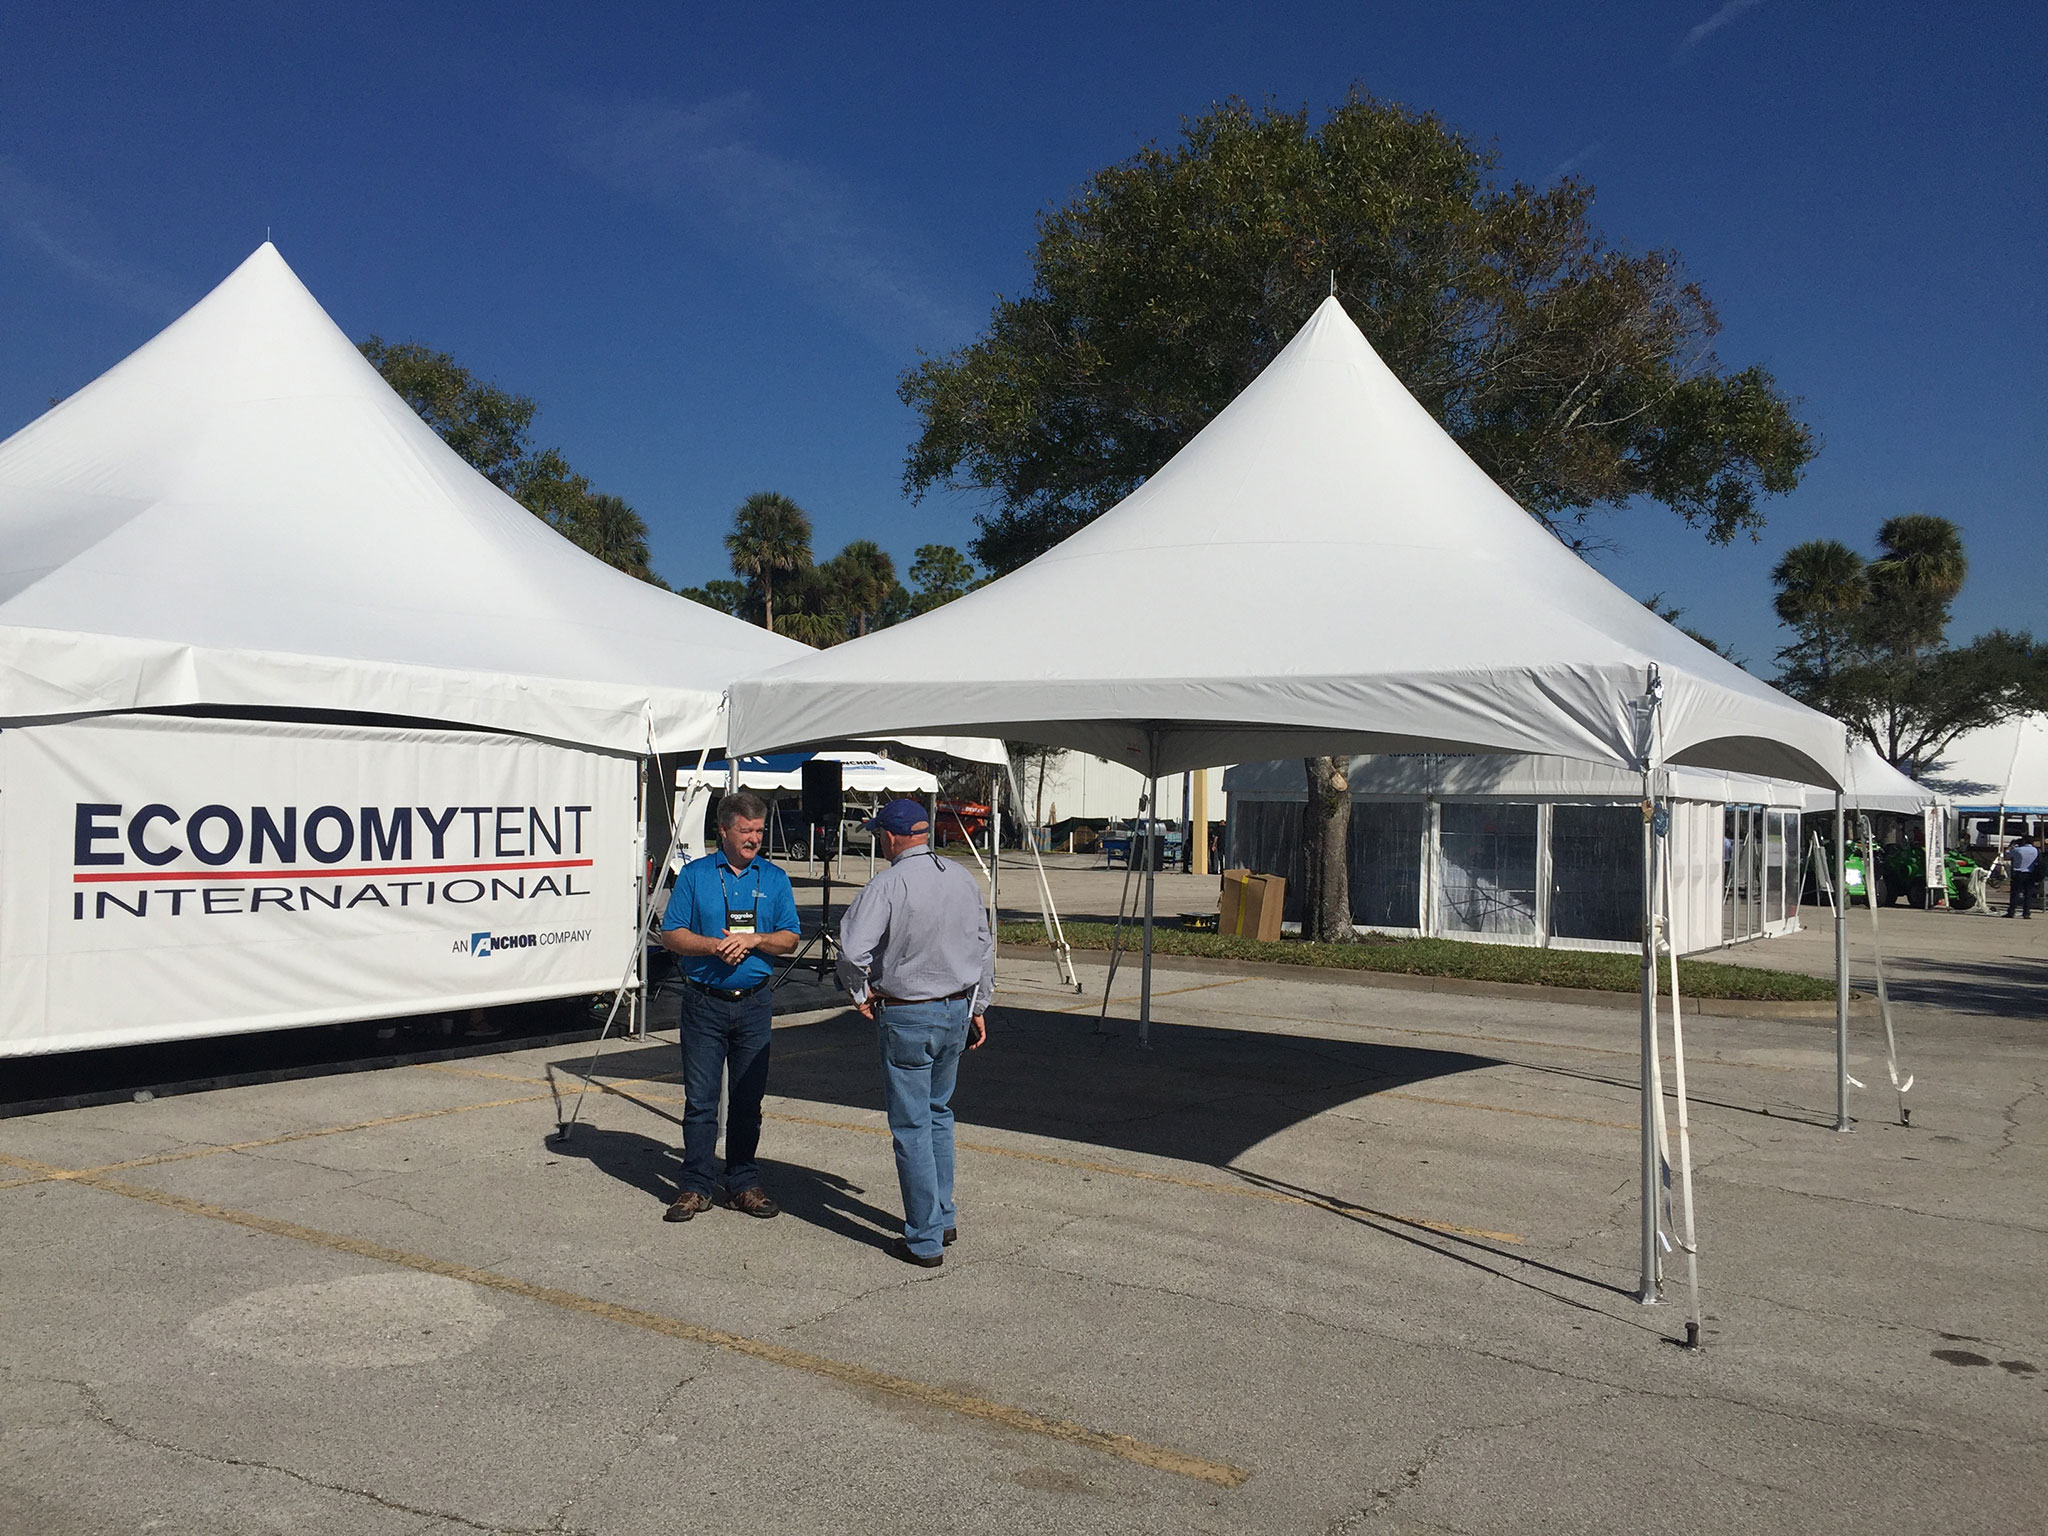 View a few of the Exhibitors at the Tent Expo and the use of our steel tent stakes for these commercial event tents. & Steel Event Tent Stake Use at Tent Expo - Hogan Tent Stakes